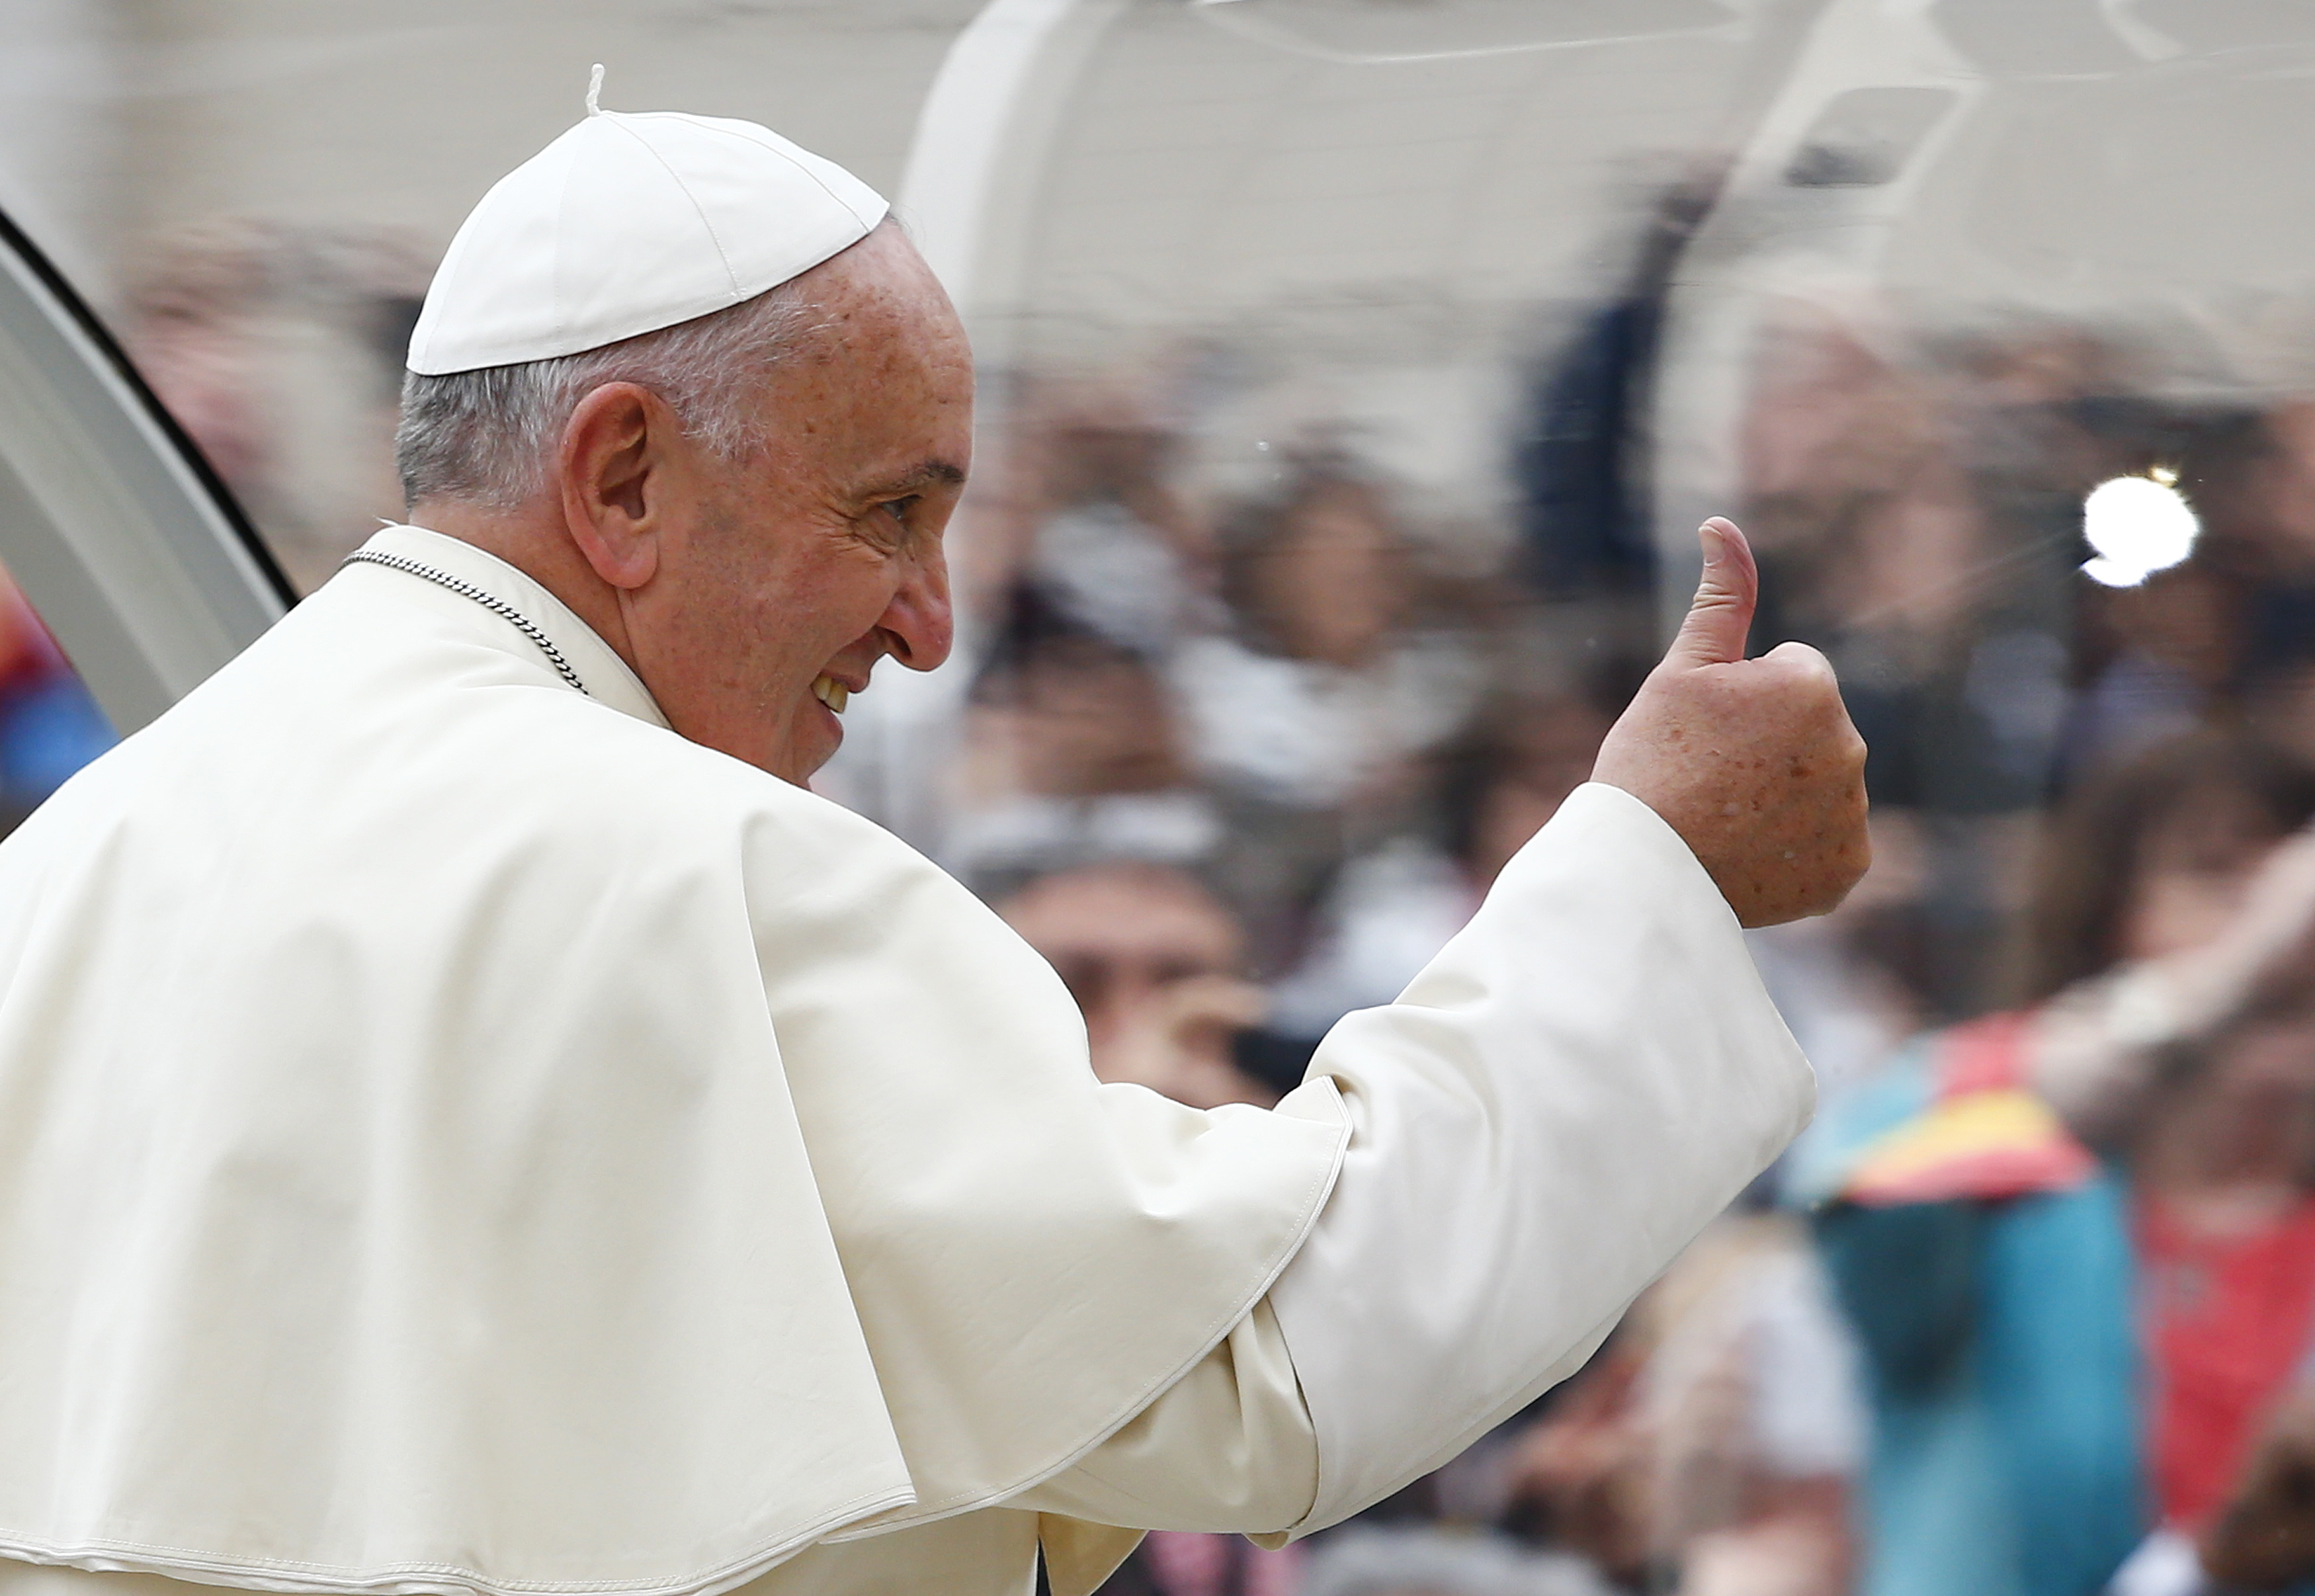 Pope Francis gestures as he arrives to lead his weekly general audience in Saint Peter's Square at the Vatican November 12, 2014.